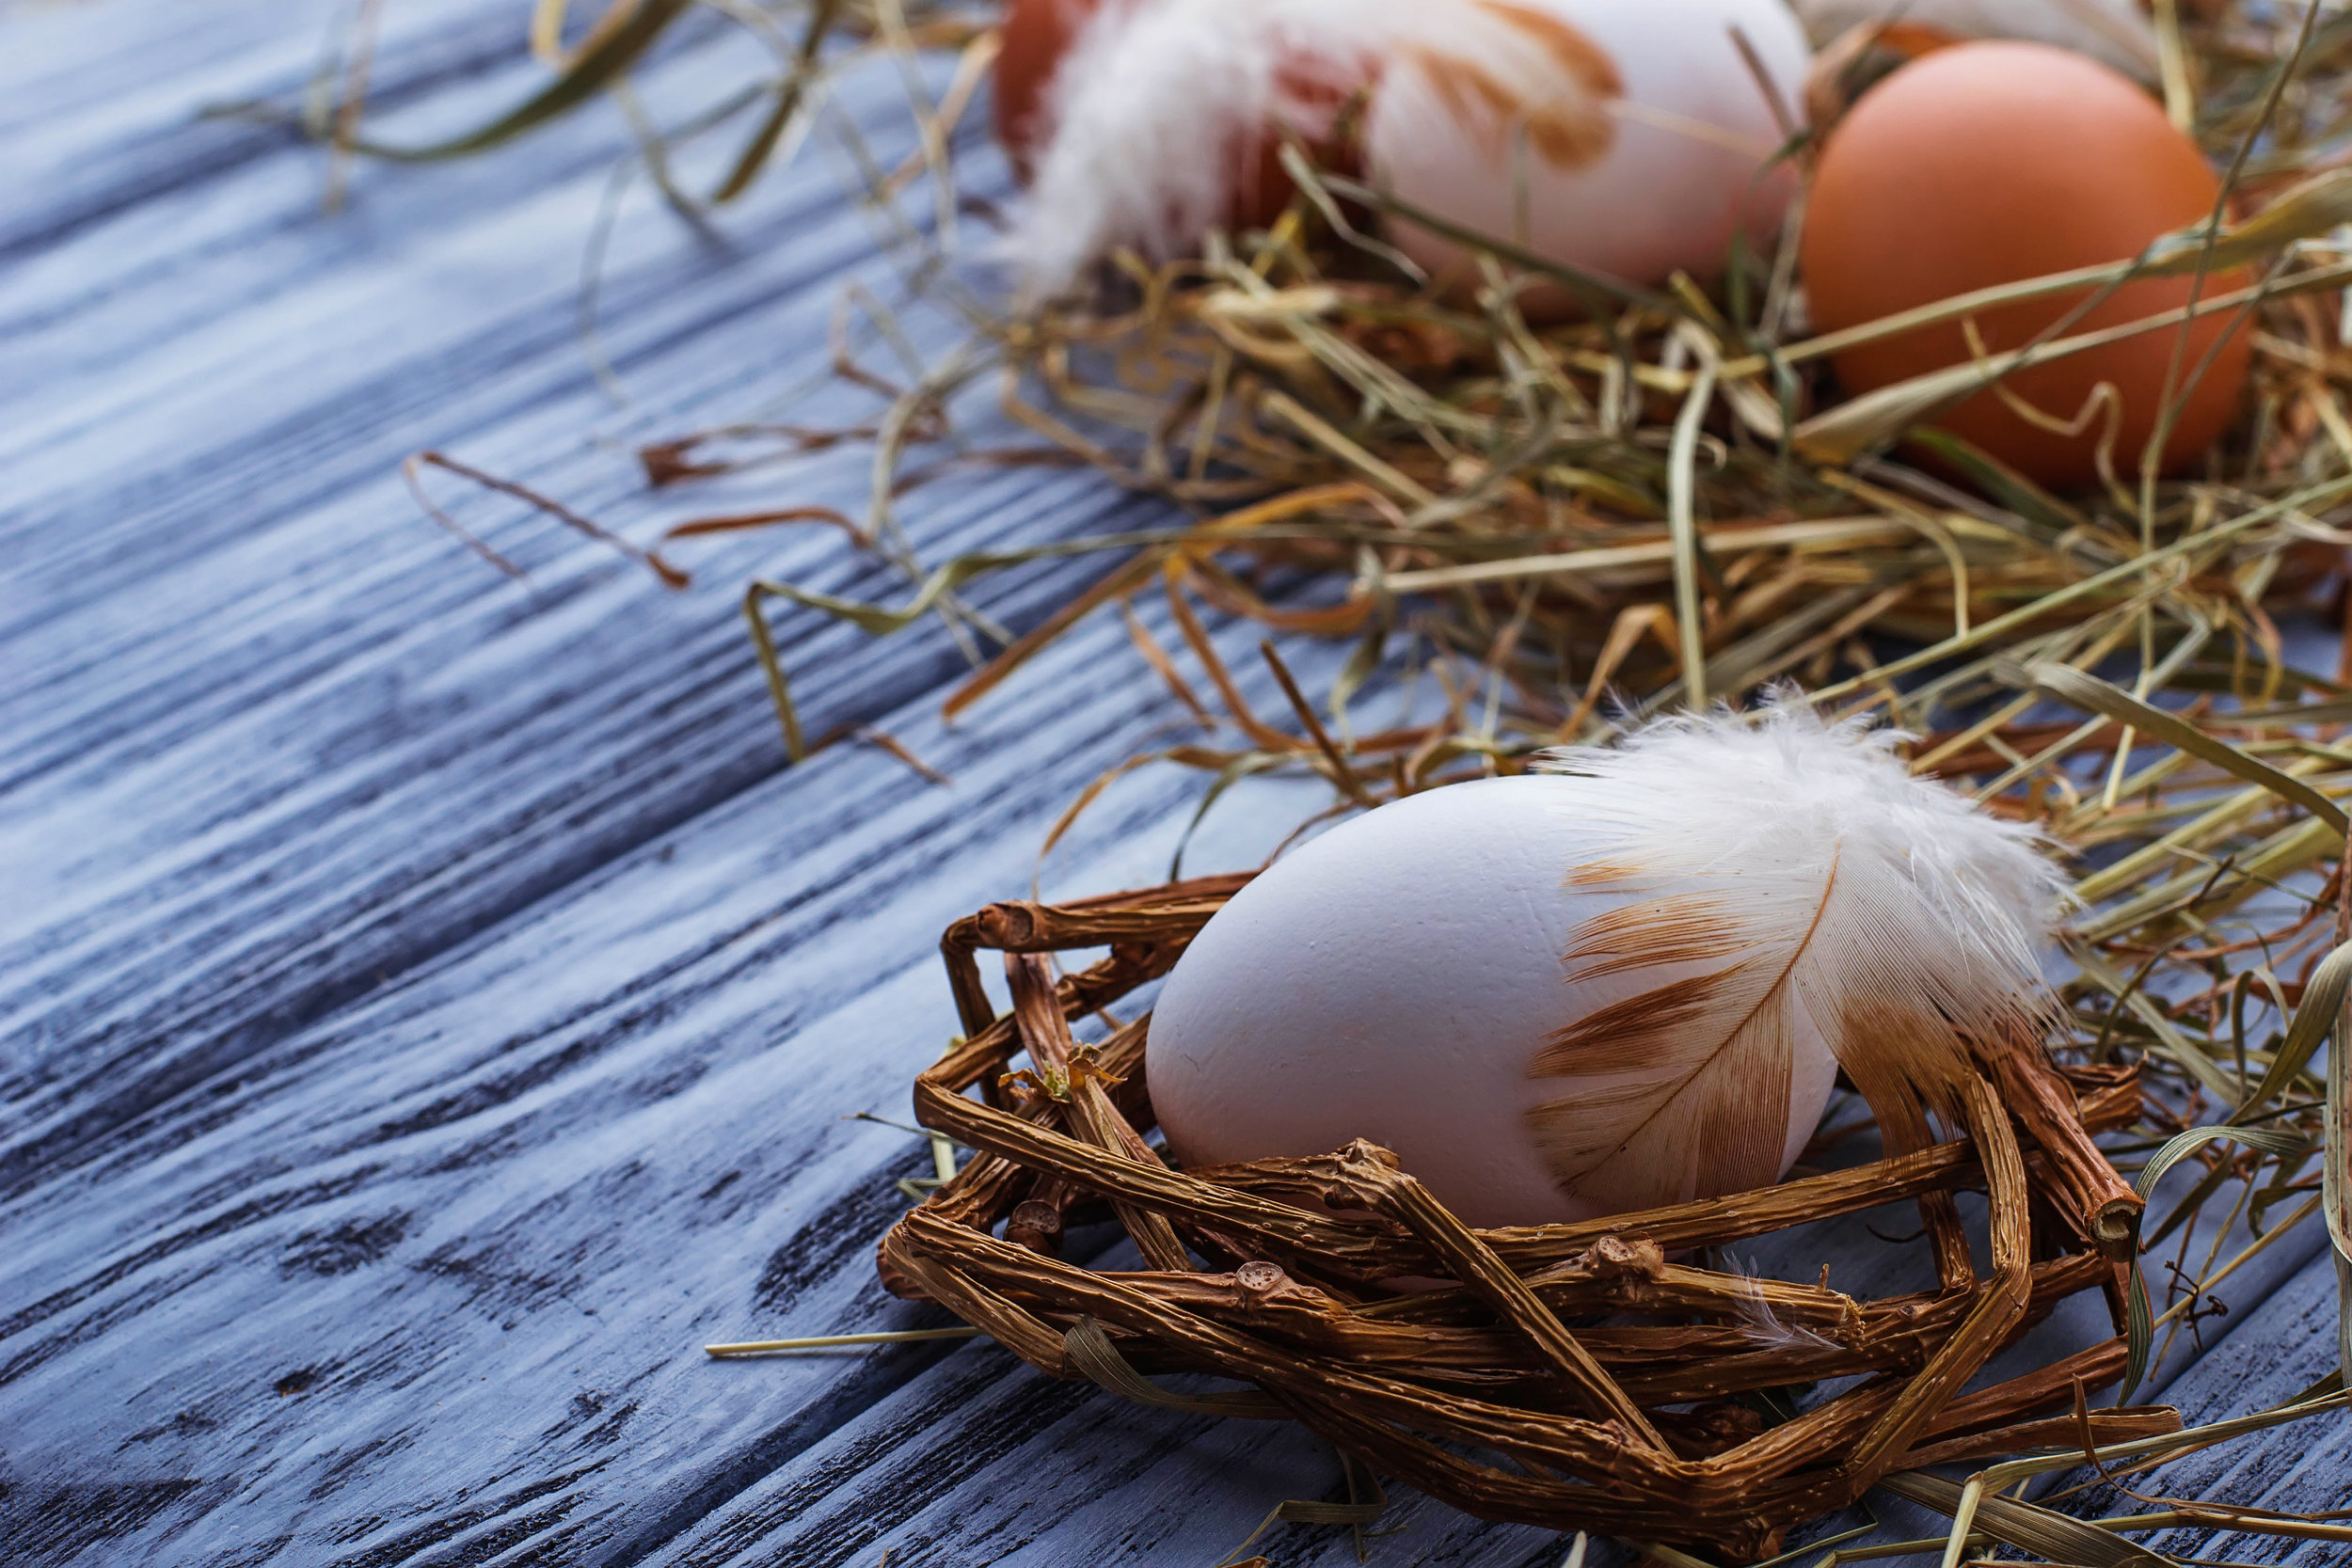 brown-and-white-eggs-on-wooden-background-647PNKS.jpg